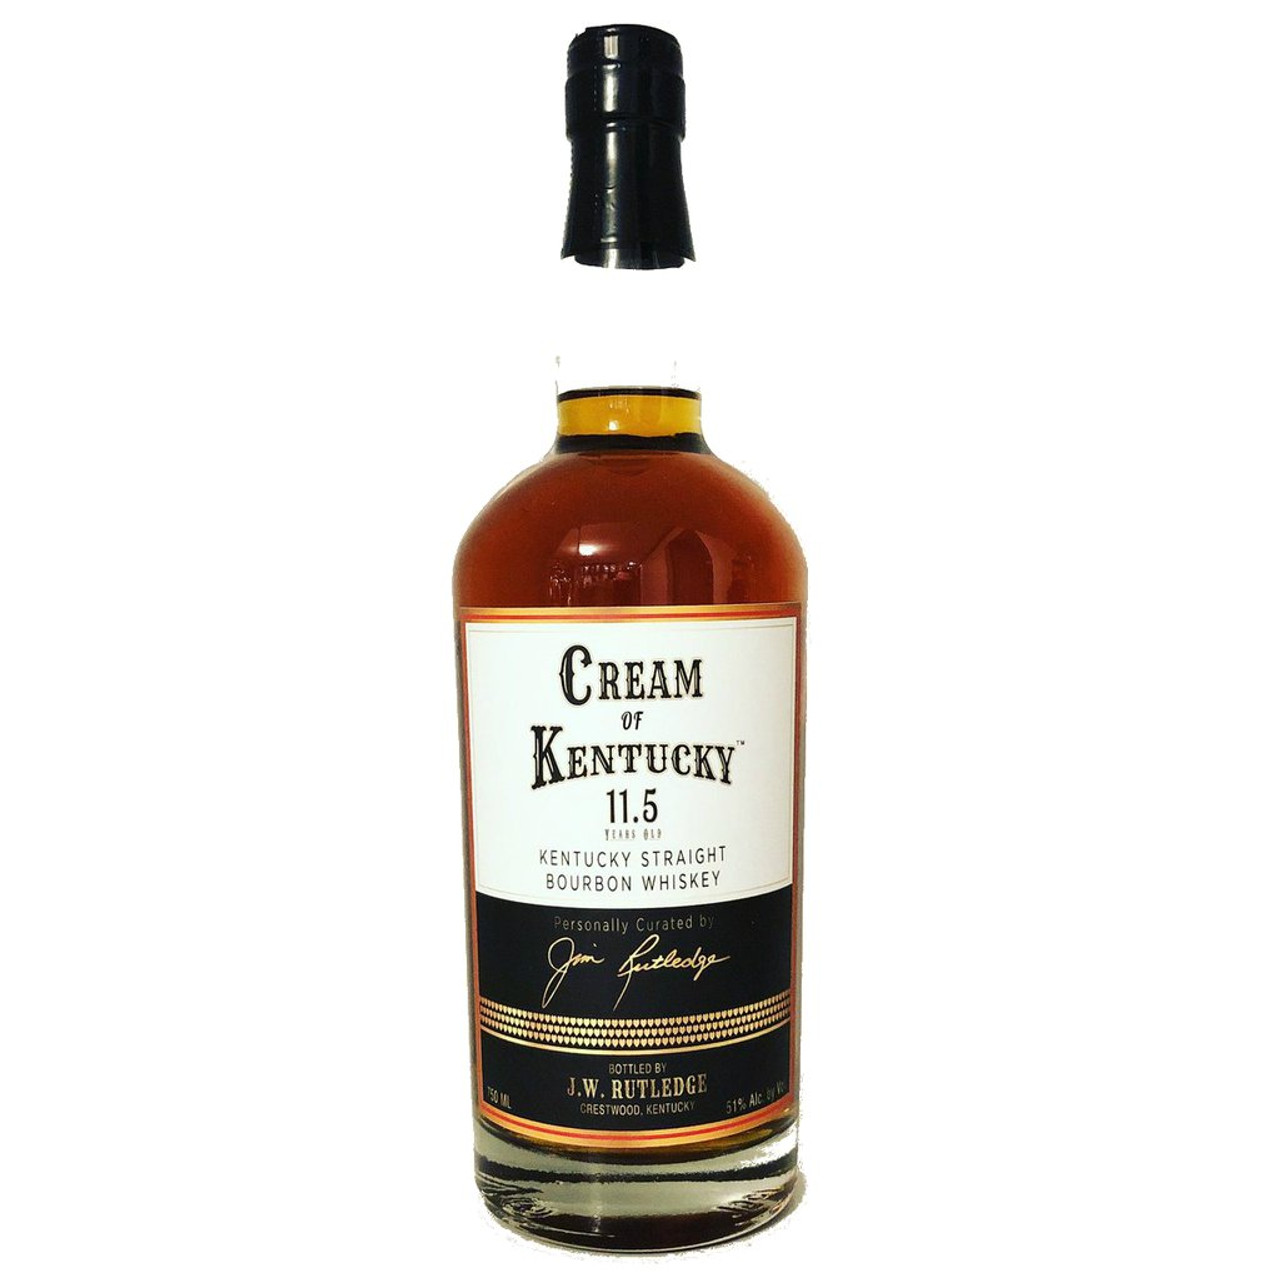 Cream of Kentucky Bourbon Whiskey 11.5 Years Old is the first release from J.W. Rutledge Distillery, founded by former Four Roses master distiller Jim Rutledge.